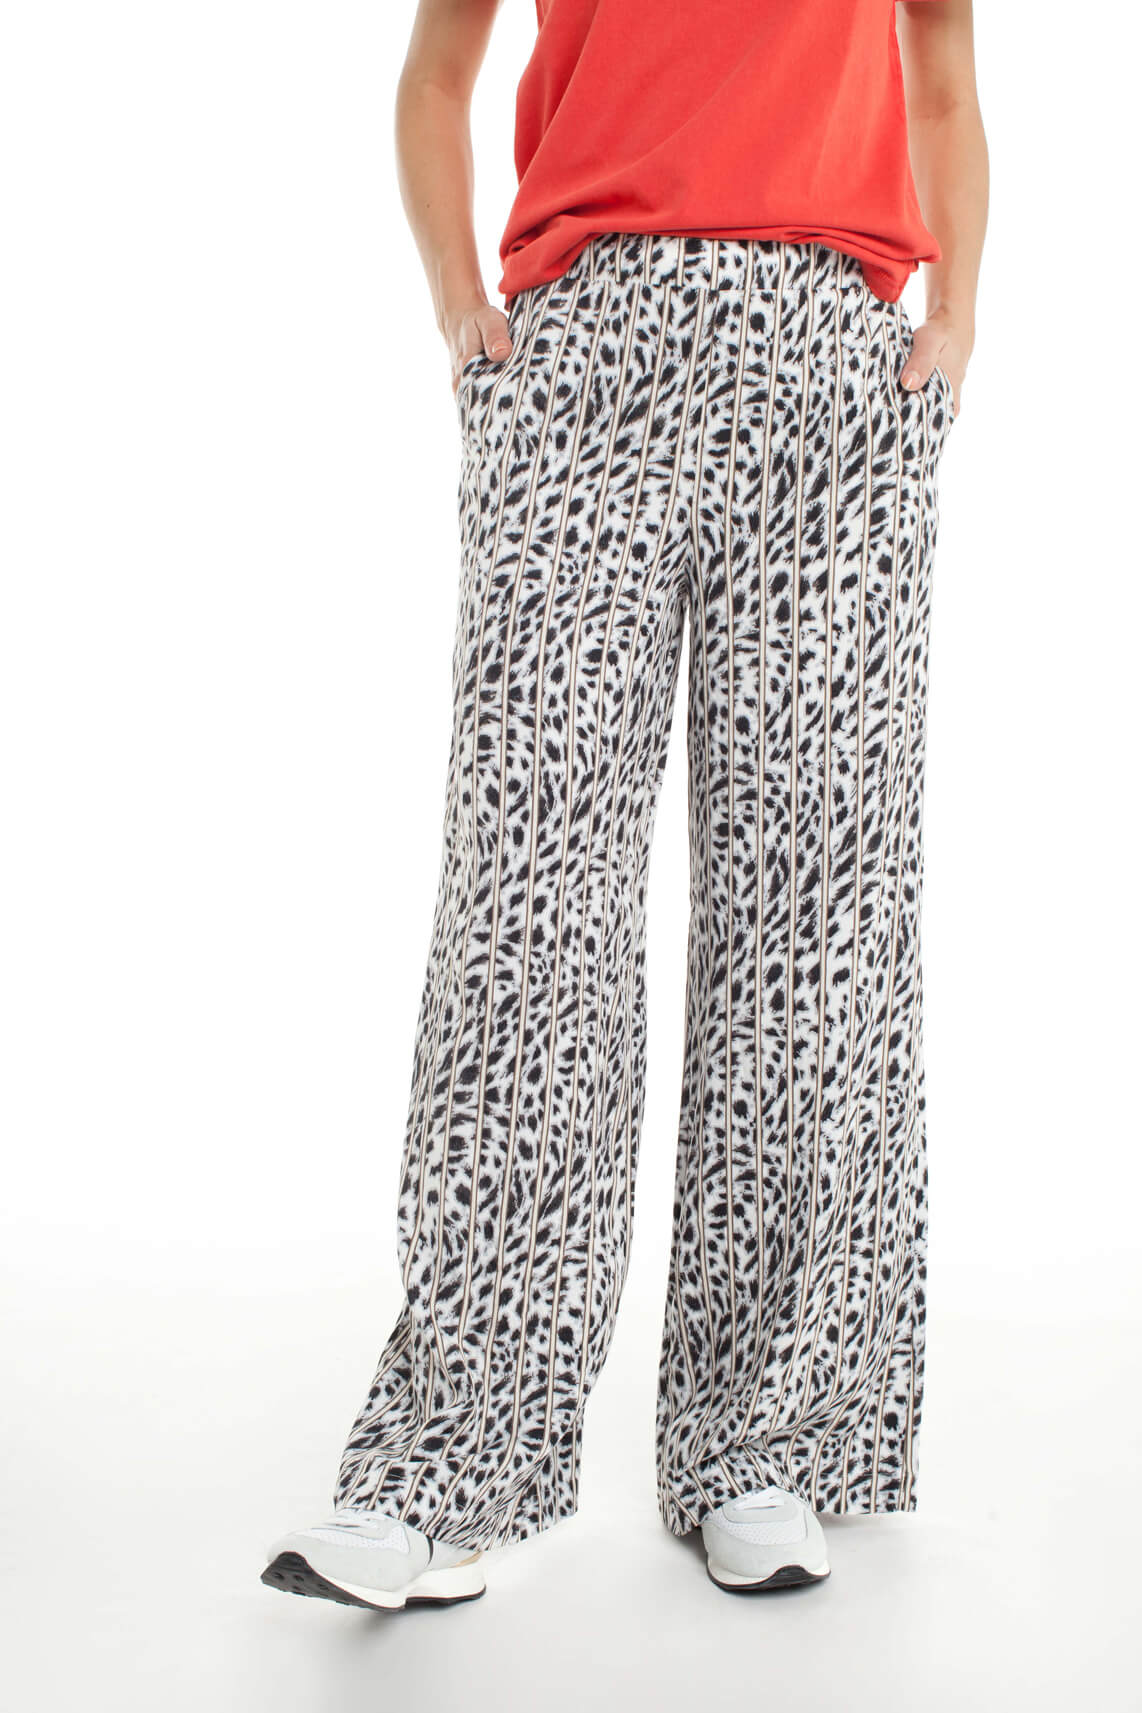 Alix The Label Dames Flared panterprint broek Grijs